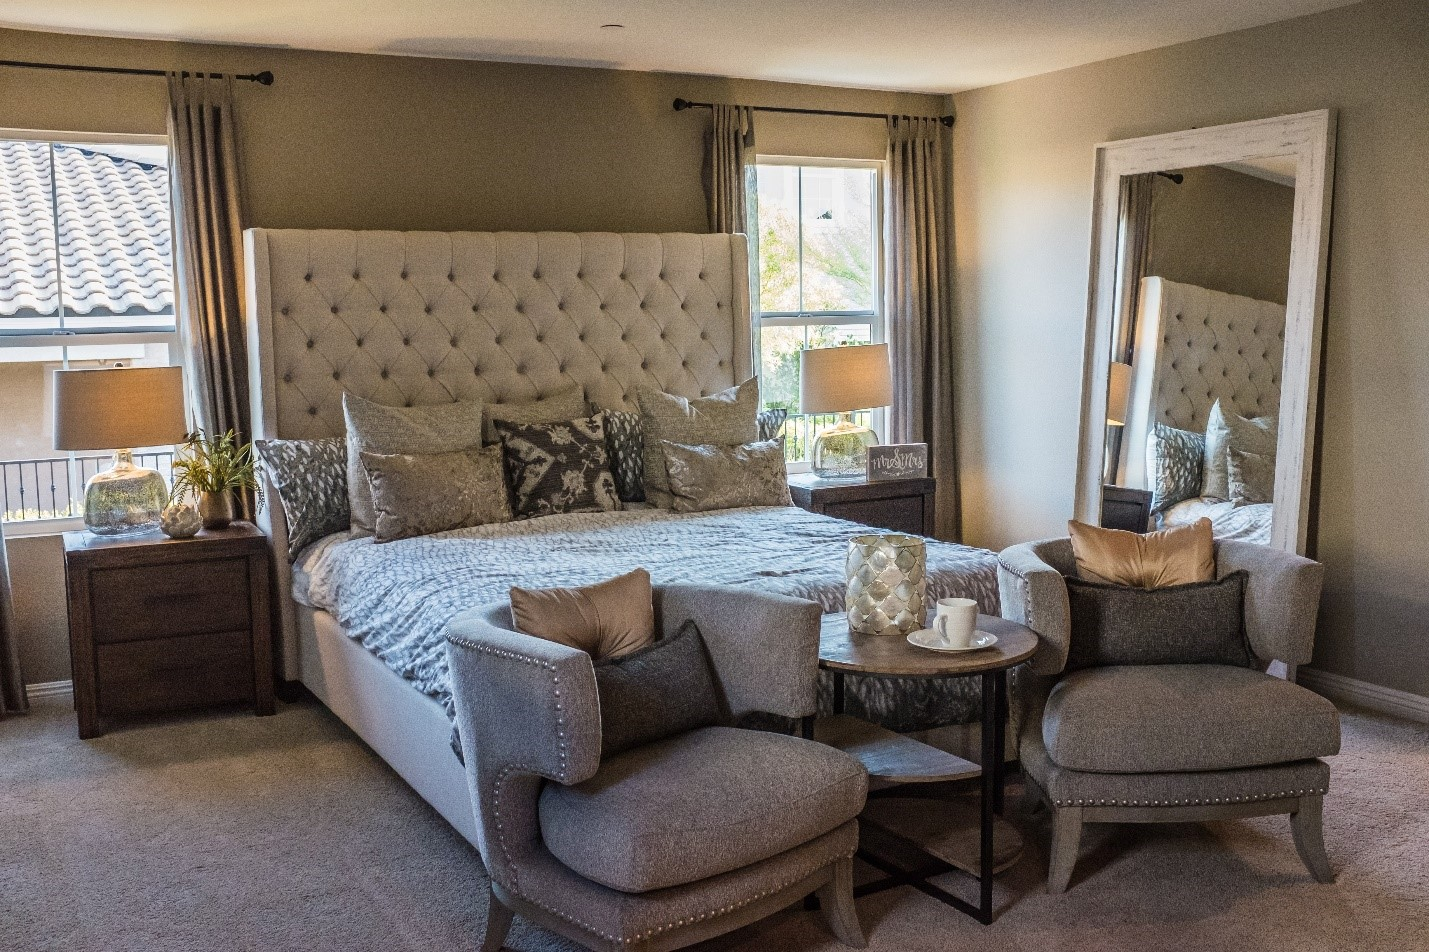 31 Awesome Decorating large Master Bedroom Ideas